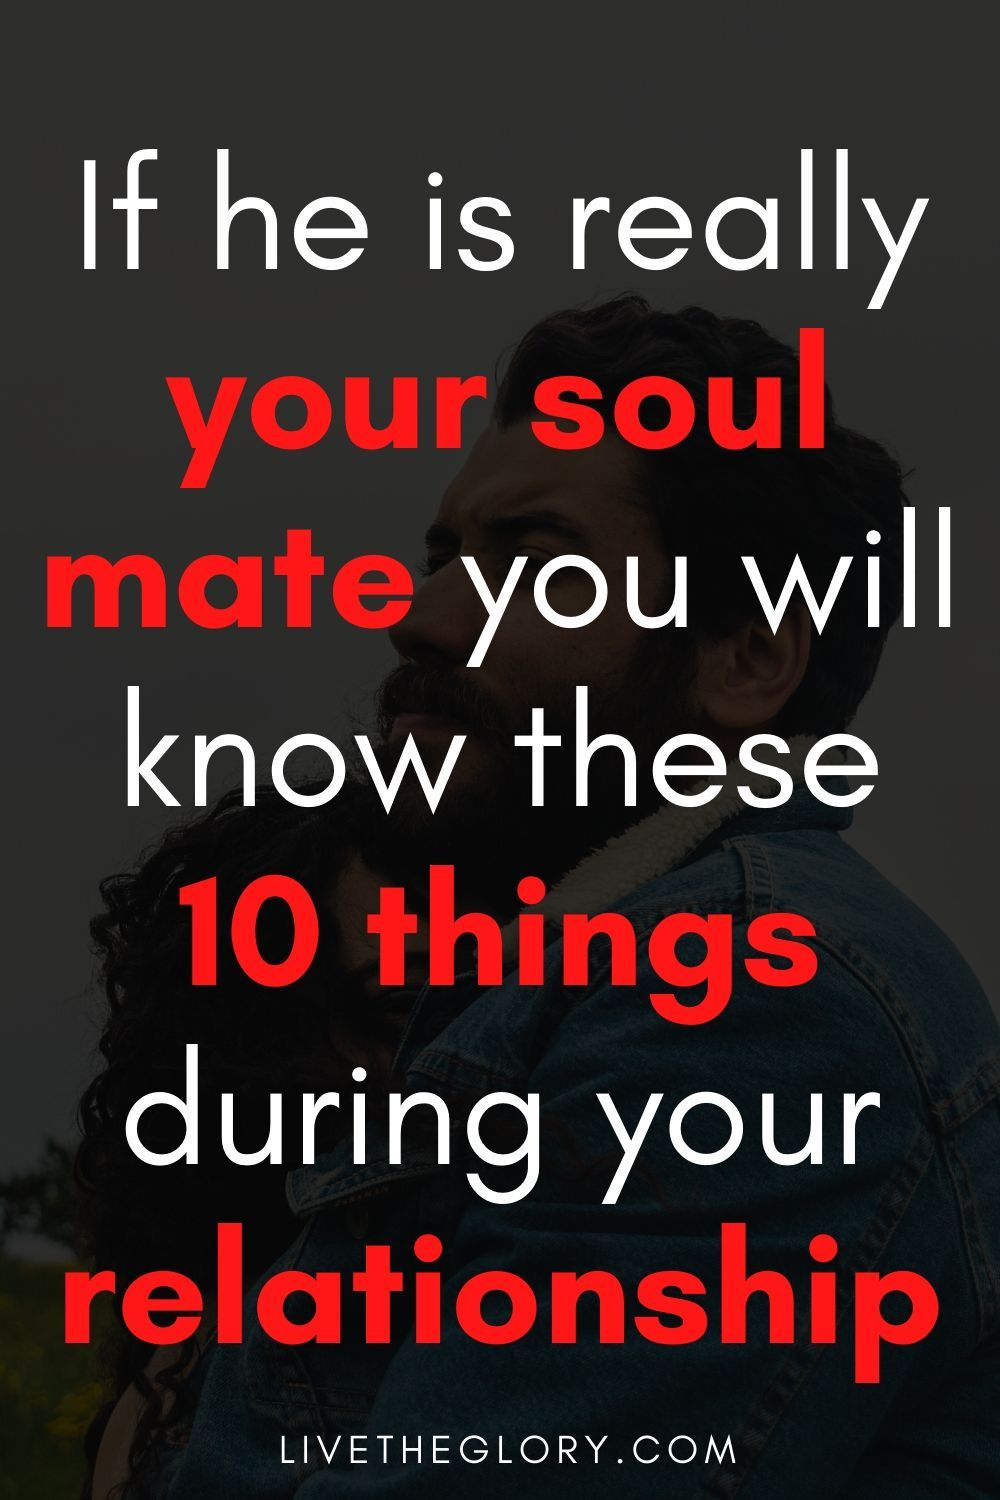 If he is really your soul mate, you will know thes